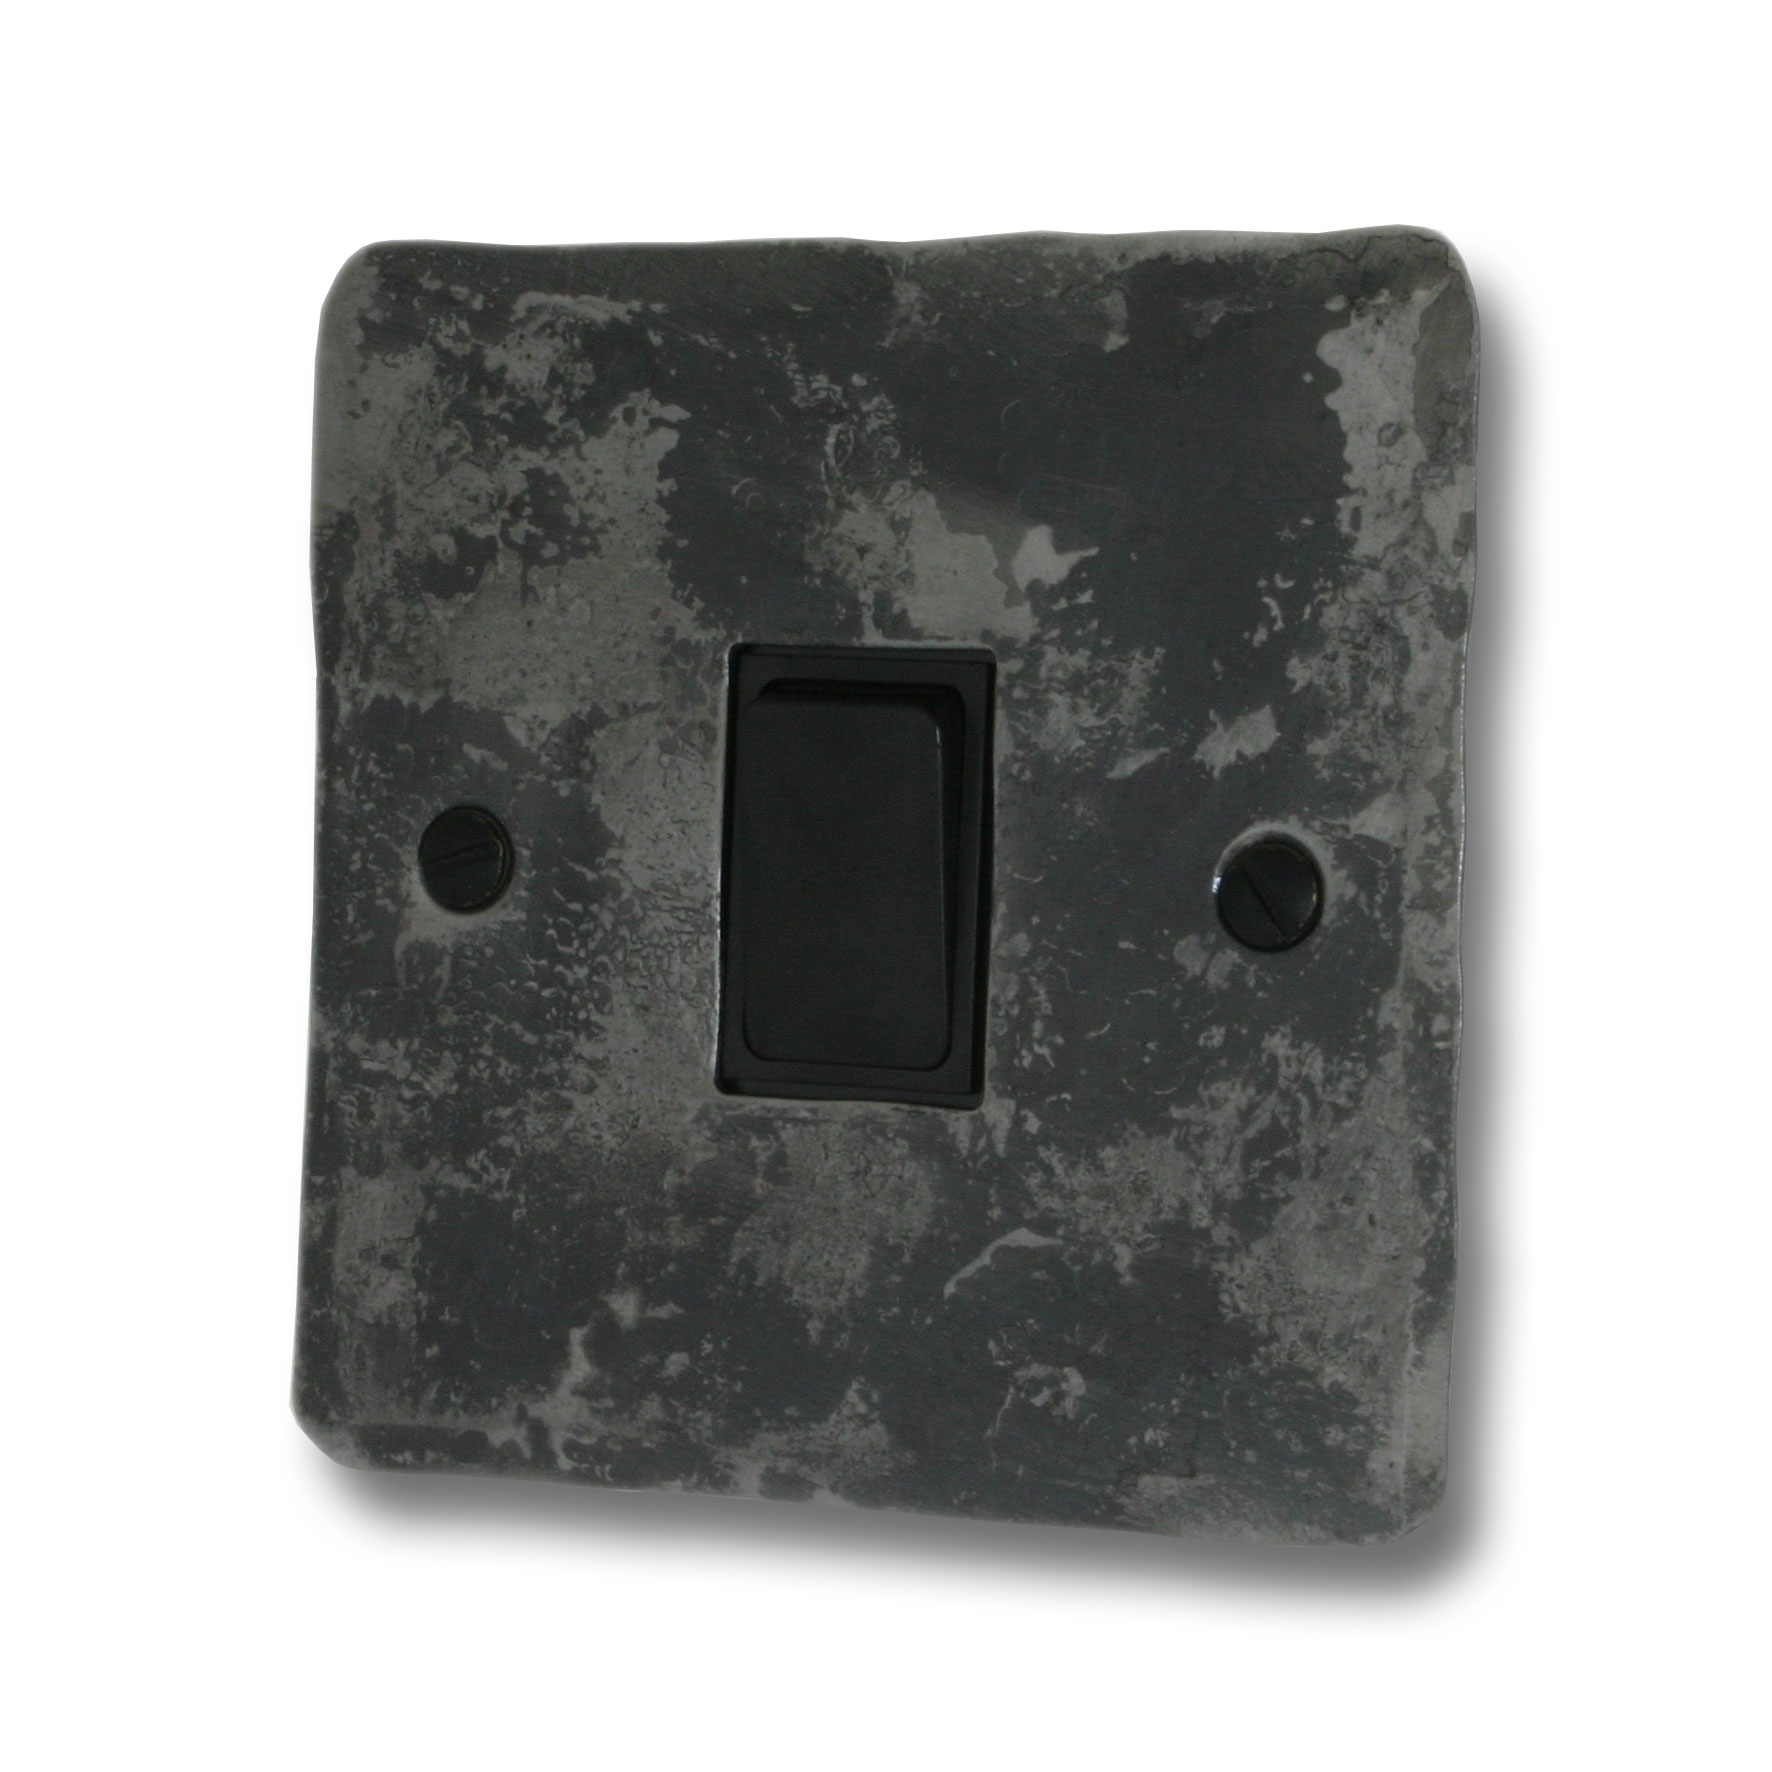 Flat Rustic Sockets and Switches